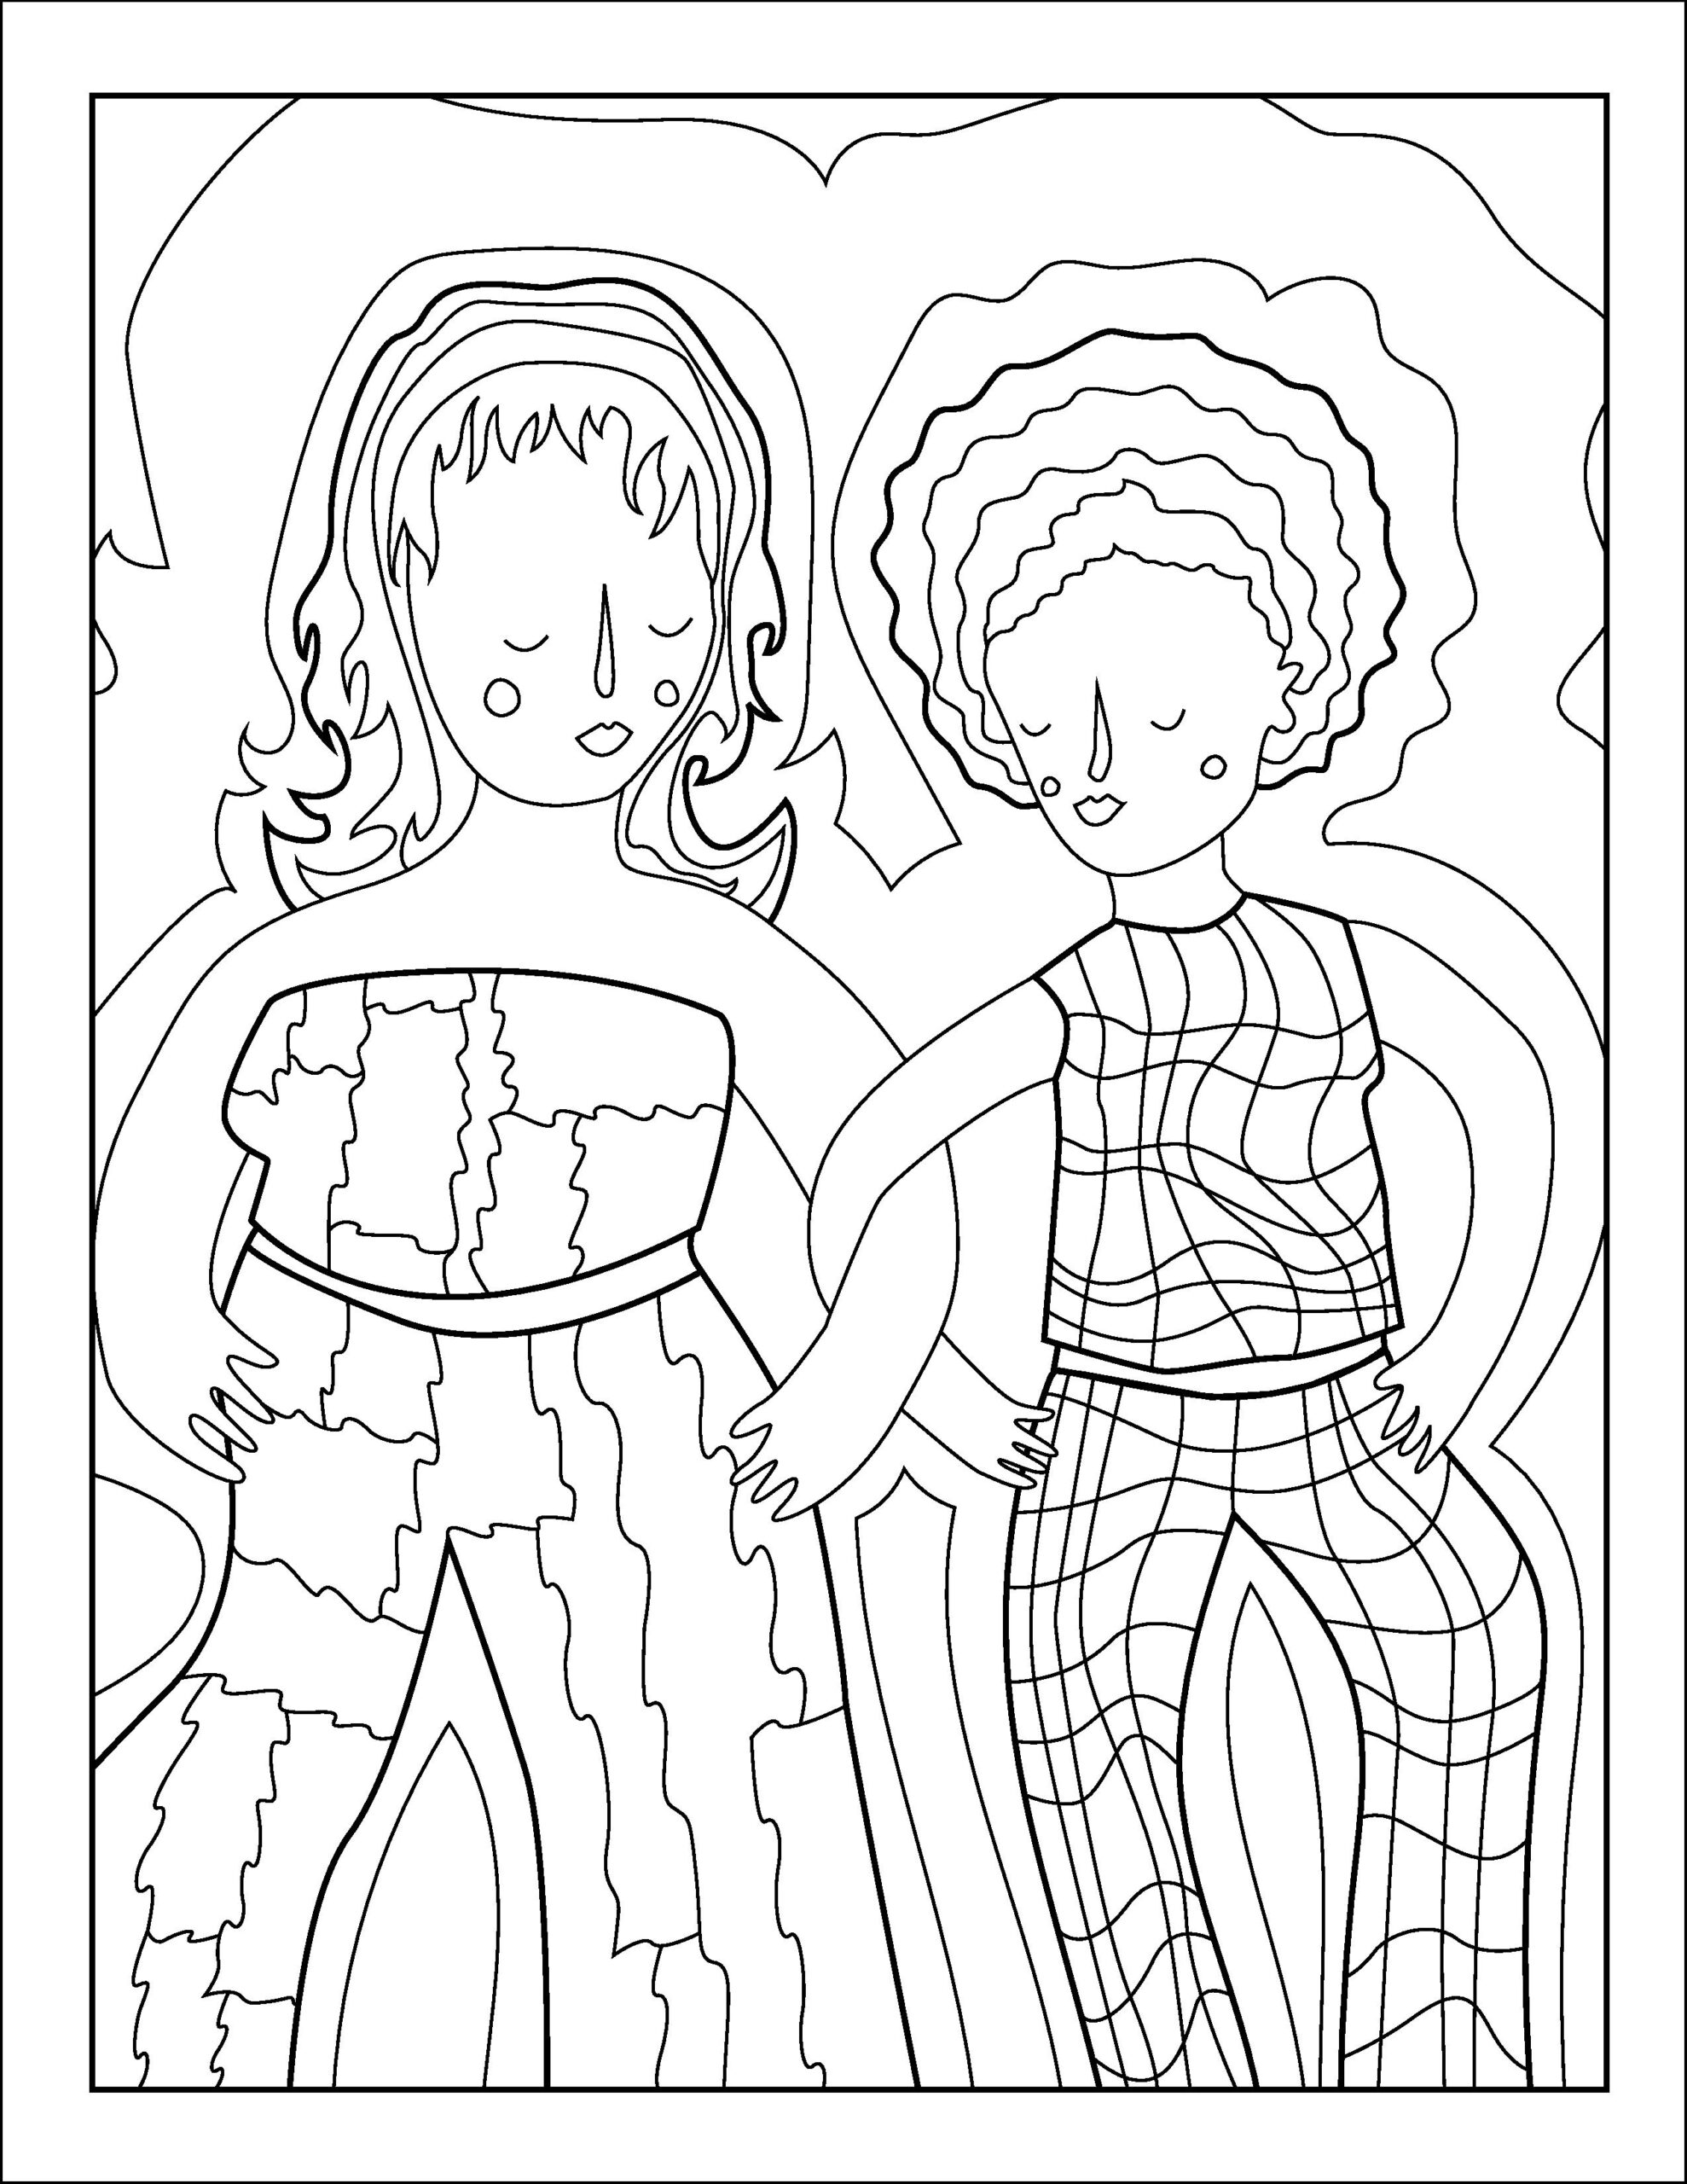 Colouring page illustrations of two figures in matching clothing sets.